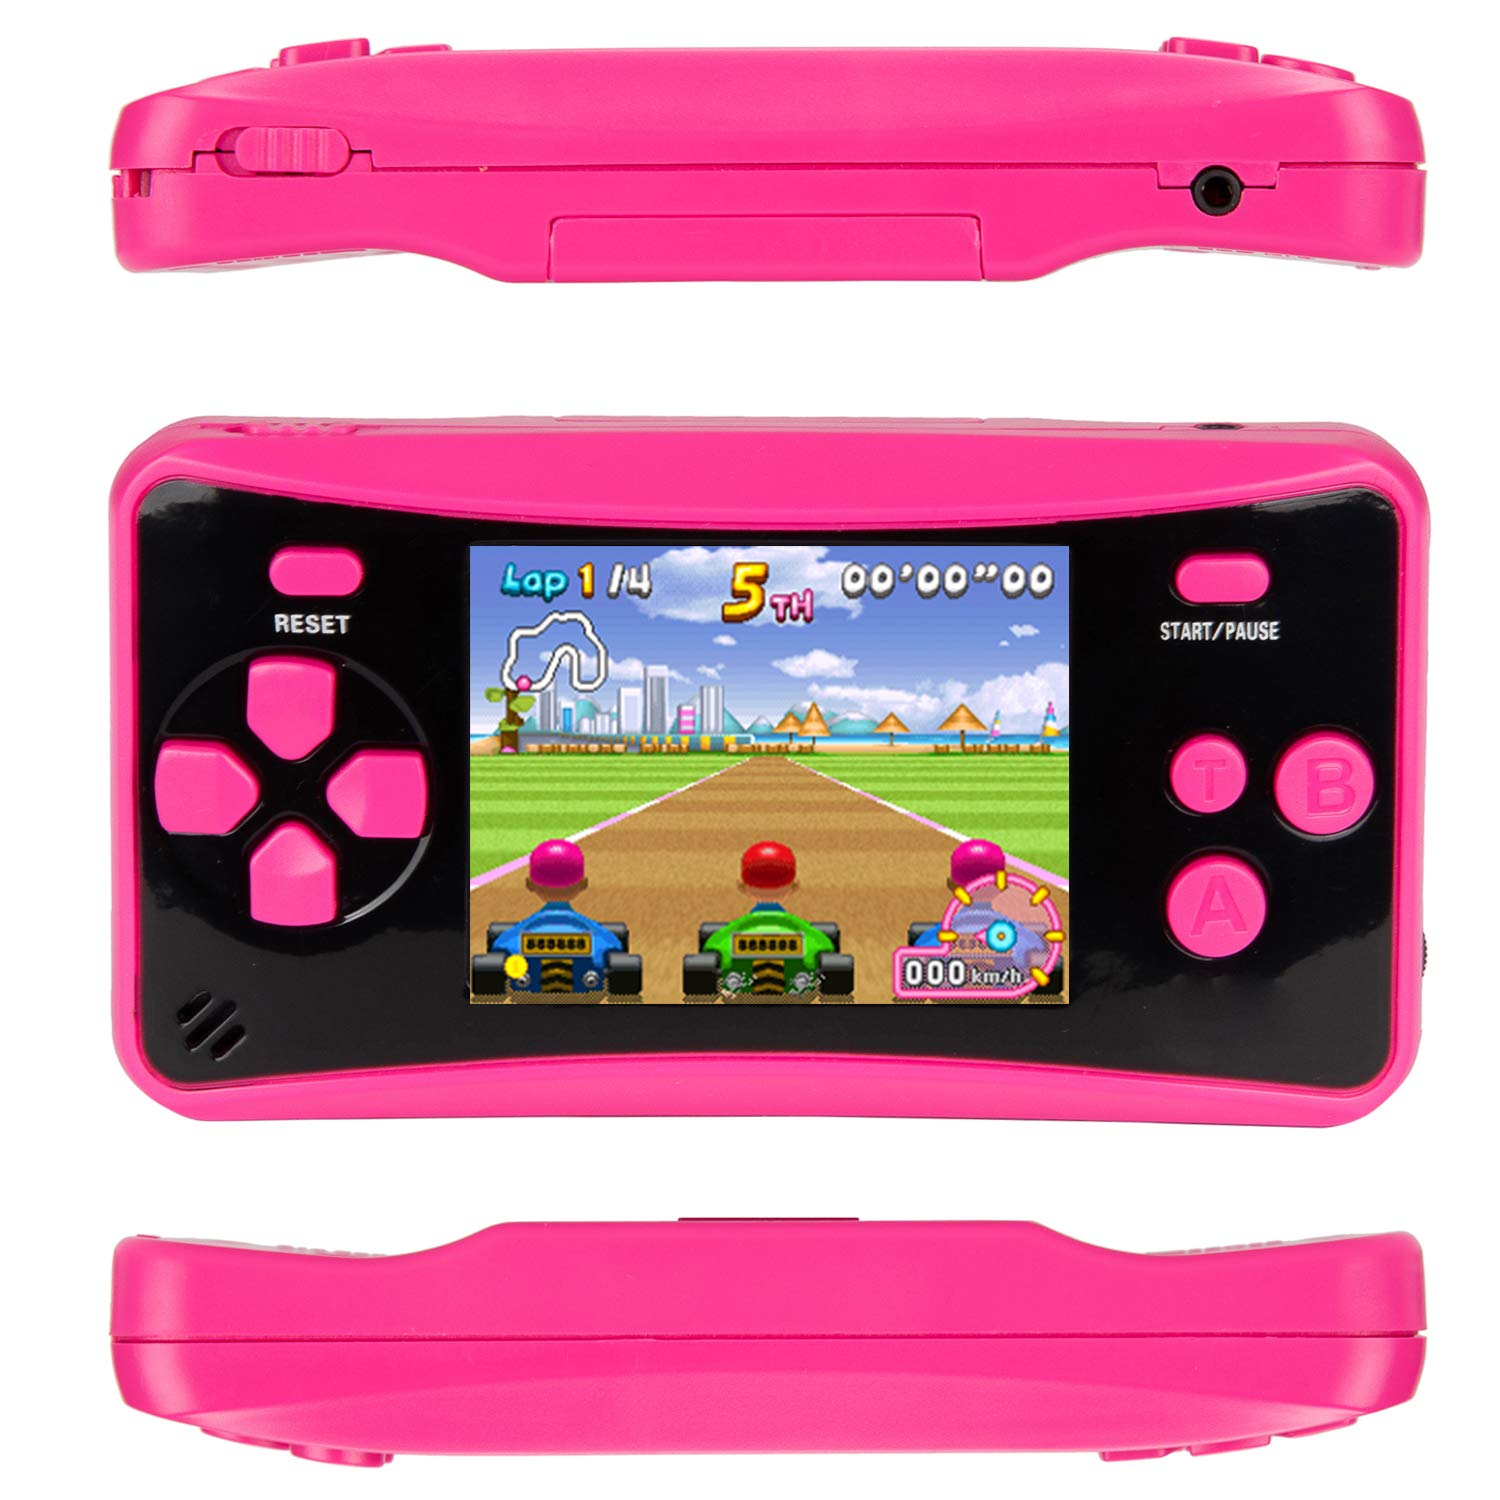 HigoKids Handheld Game Console for Kids Portable Retro Video Game Player Built-in 182 Classic Games 2.5 inches LCD Screen Family Recreation Arcade Gaming System Birthday Present for Children-Rose Red by HigoKids (Image #6)